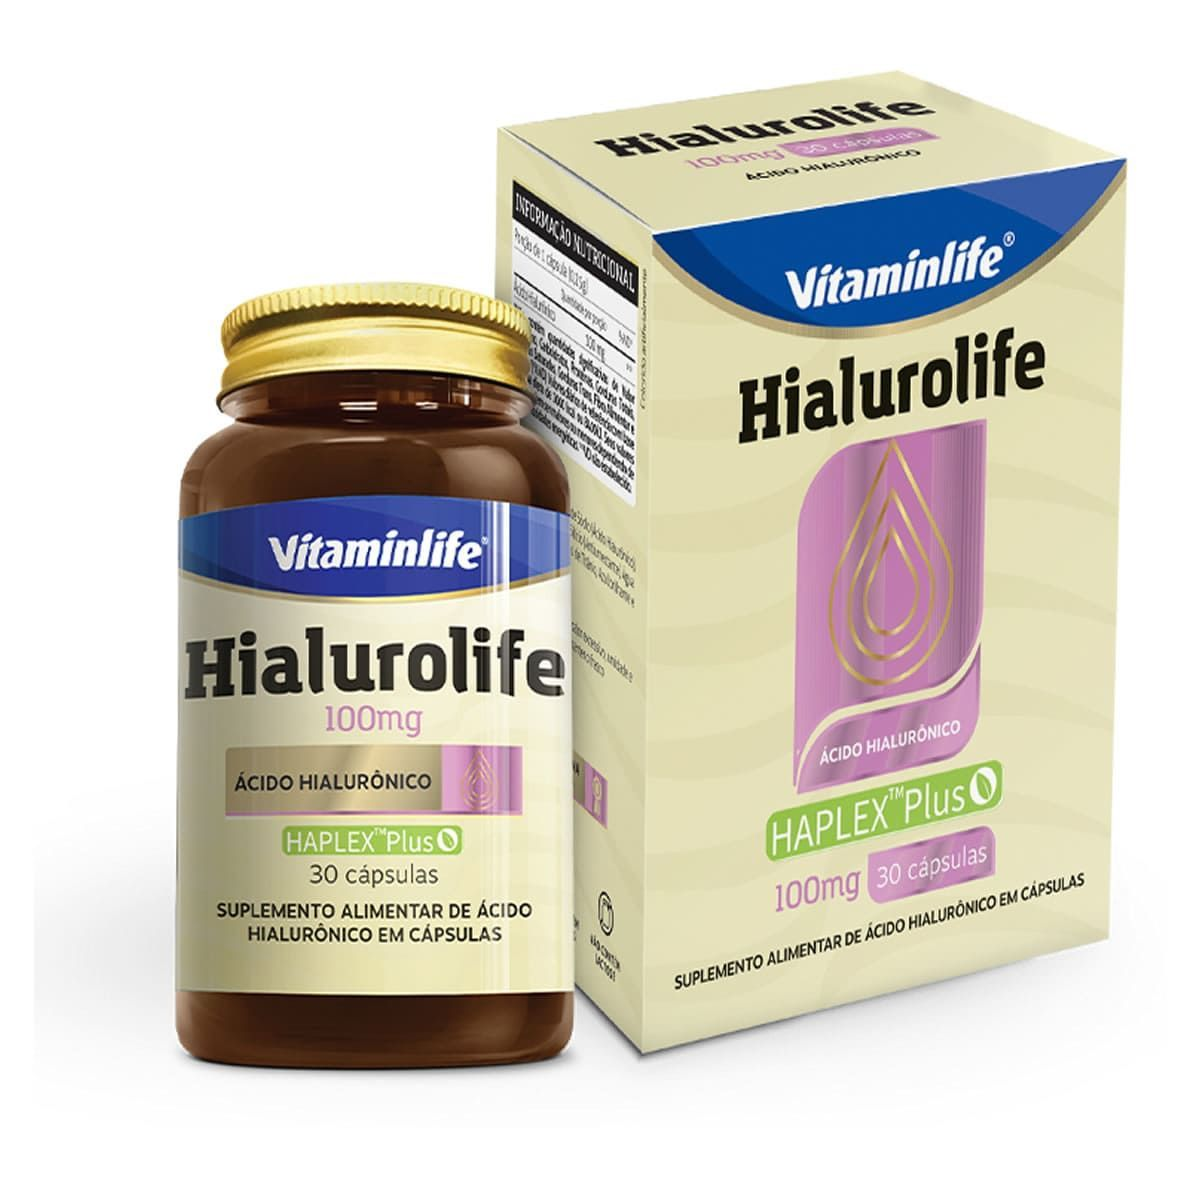 HIALUROLIFE 100mg 30 CAPS - VITAMIN LIFE